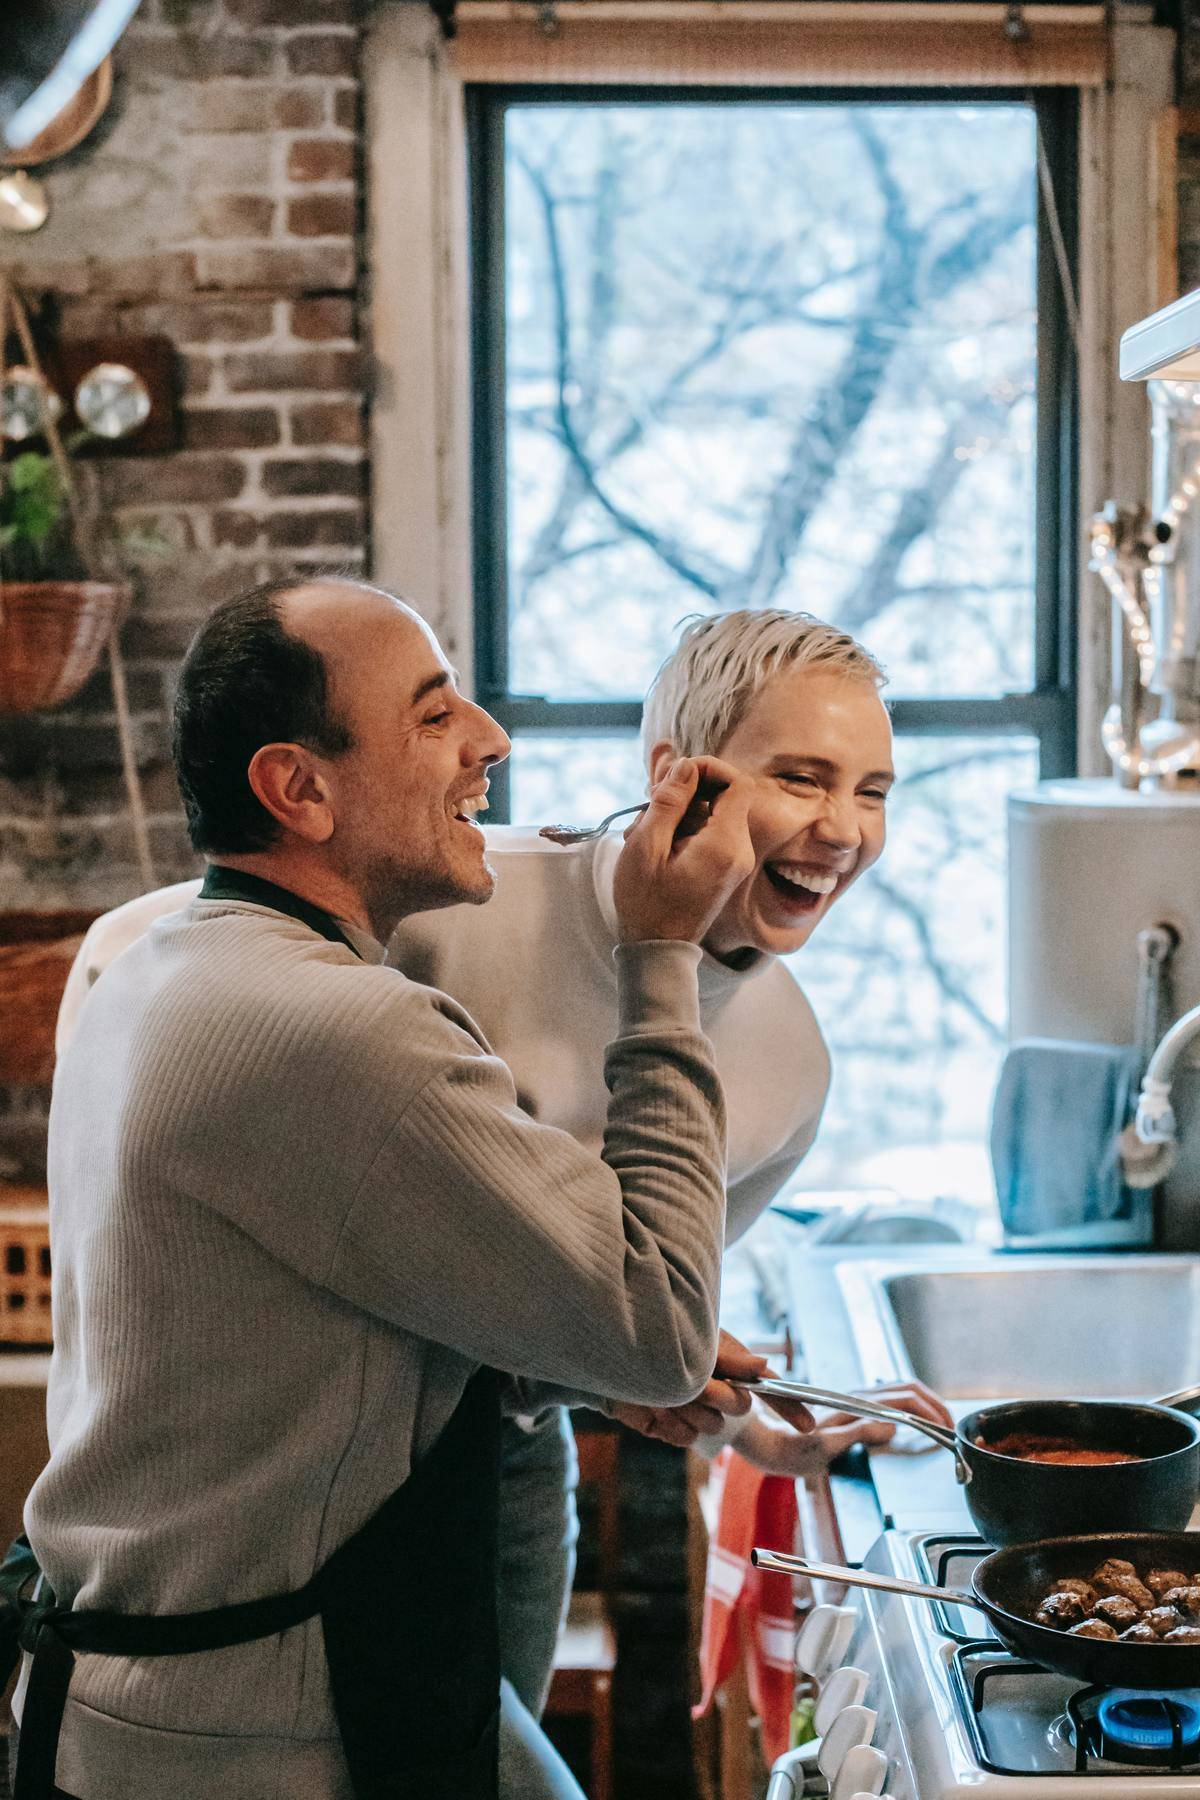 Couple laughs in kitchen, man wears apron and holds spoon for woman to taste